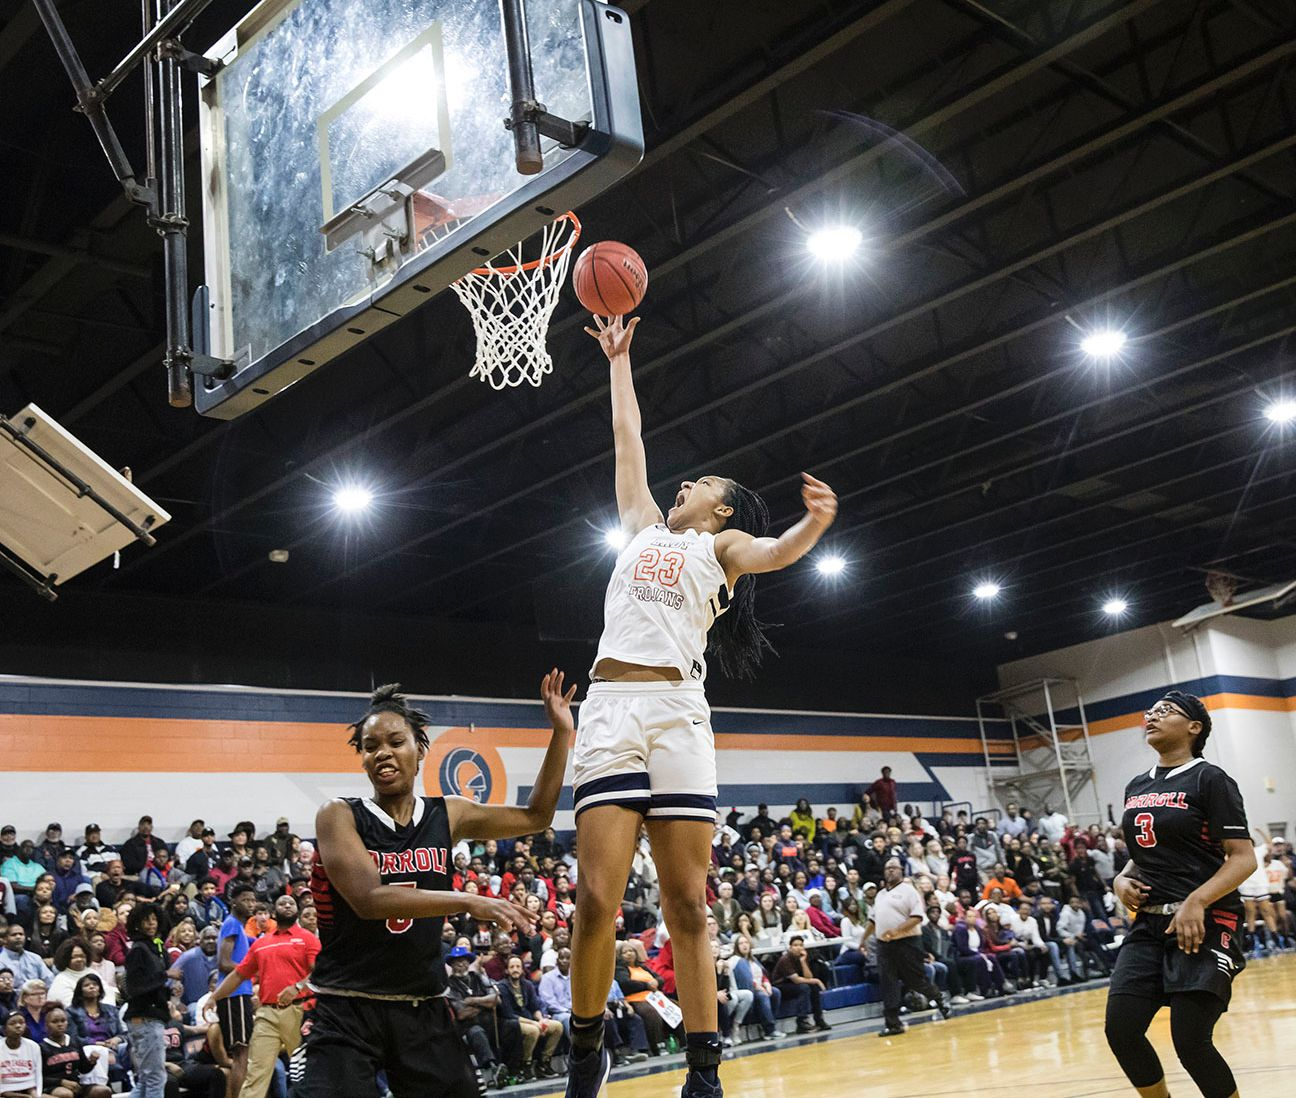 Maori Davenport continued to practice during her suspension, and her game remained top-notch when she returned to the spotlight.